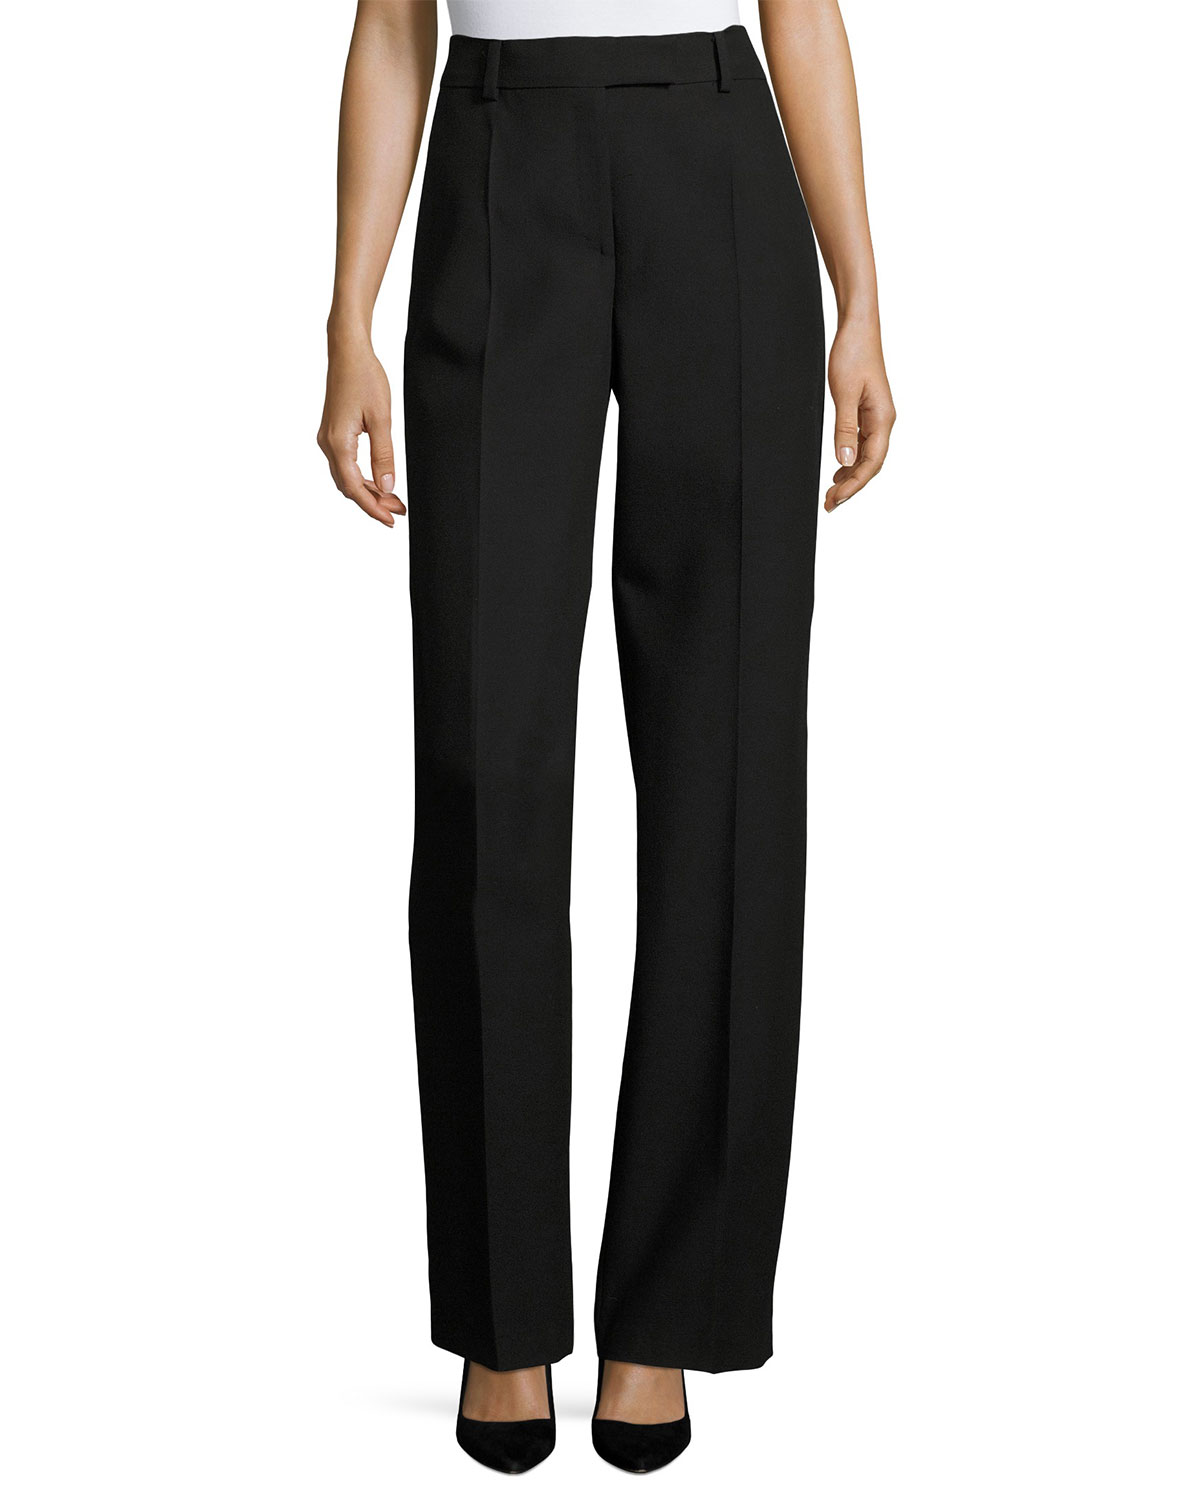 Virgin Wool High-Waist Straight-Leg Pants